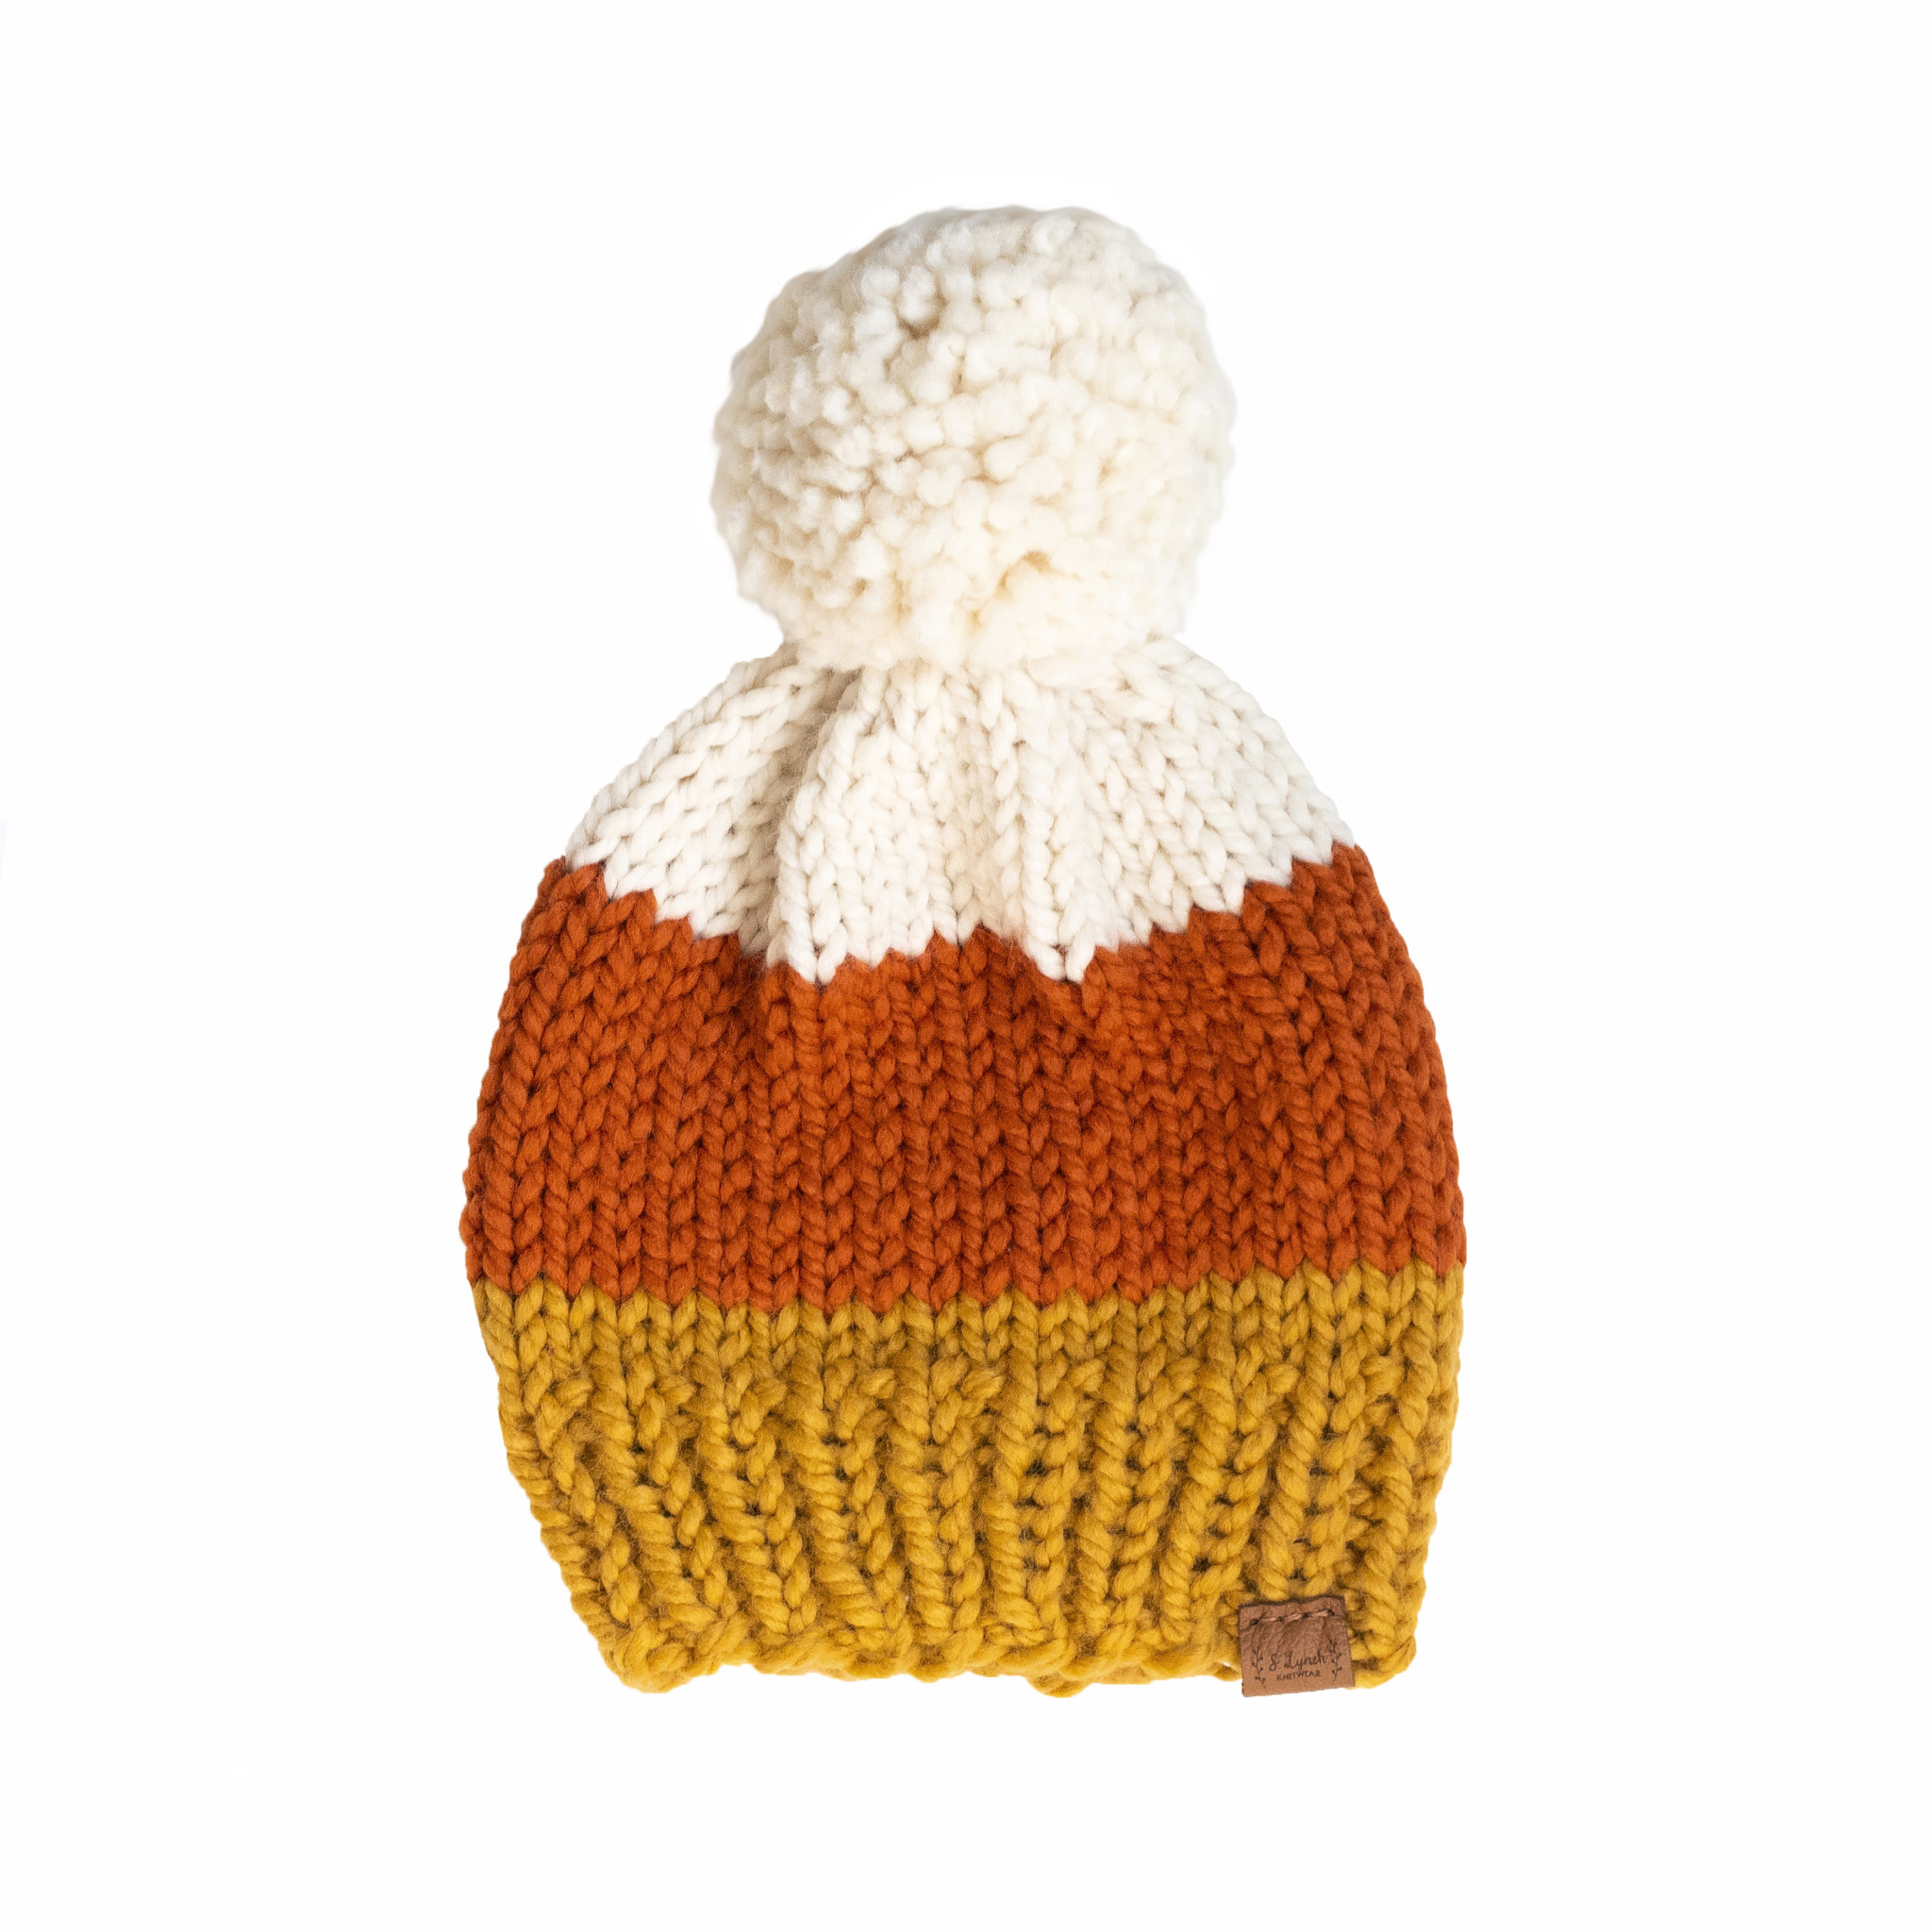 S. Lynch Knitwear Baby Hat - Candy Corn - 3-6M